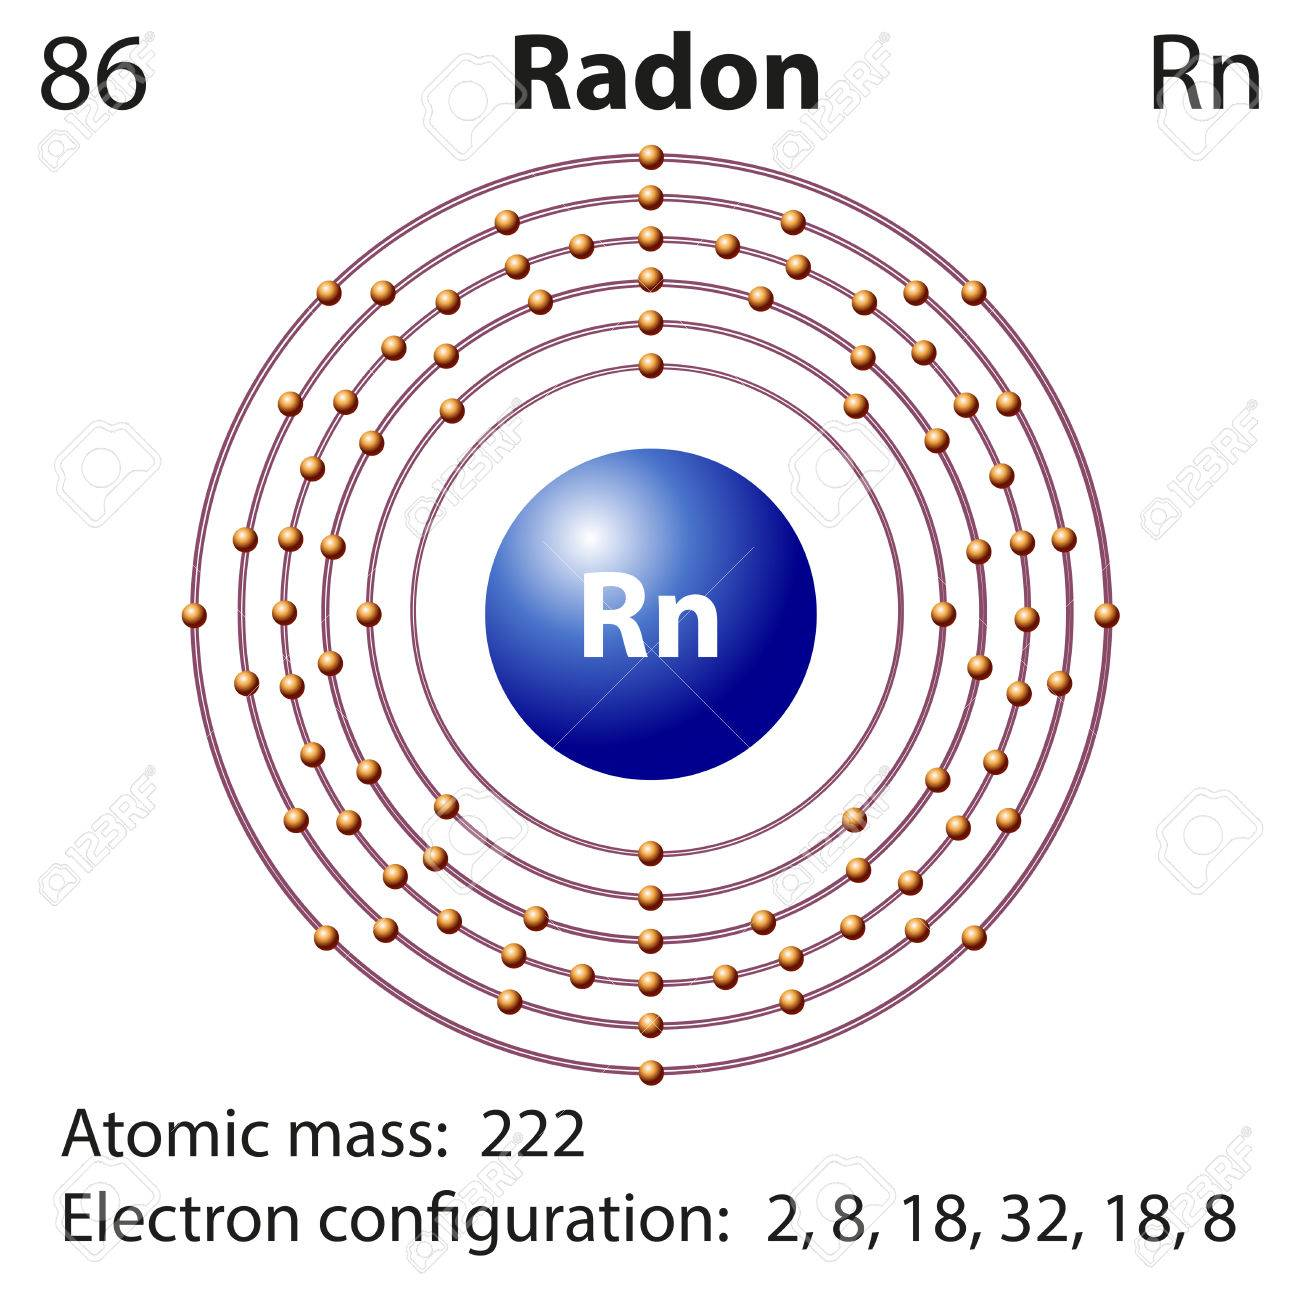 hight resolution of diagram representation of the element radon illustration royalty slab on grade diagram diagram of radon element